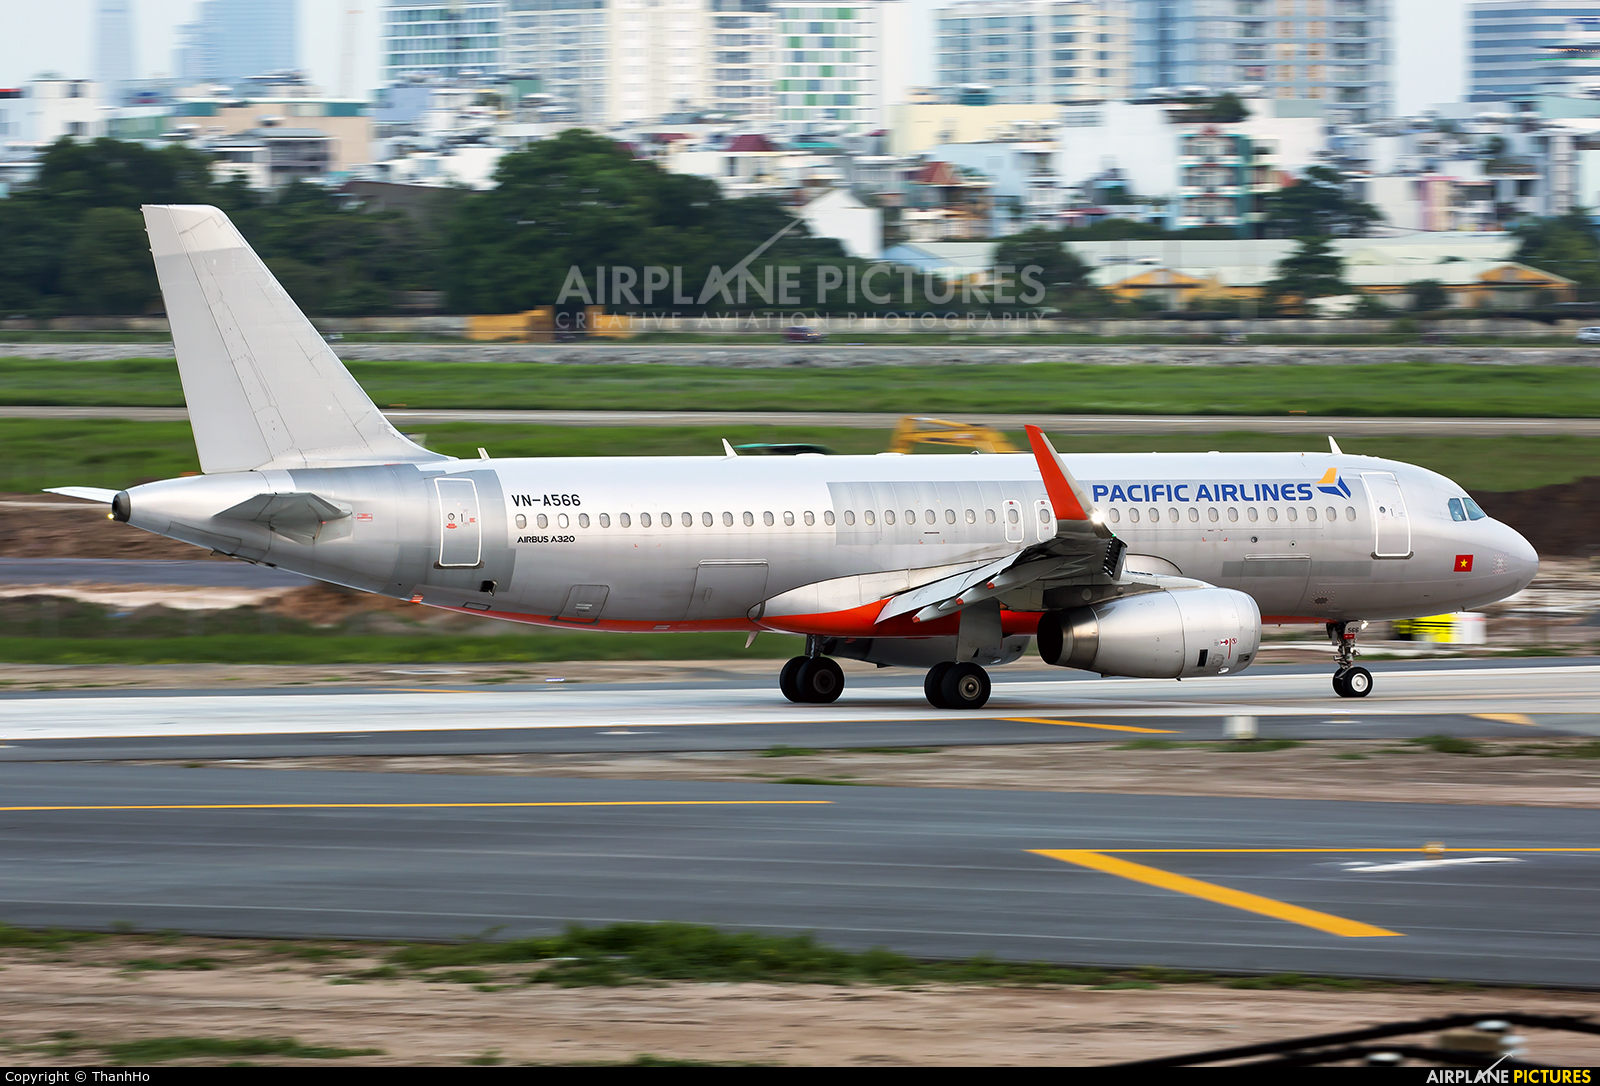 Pacific Airlines VN-A566 aircraft at Ho Chi Minh City - Tan Son Nhat Intl